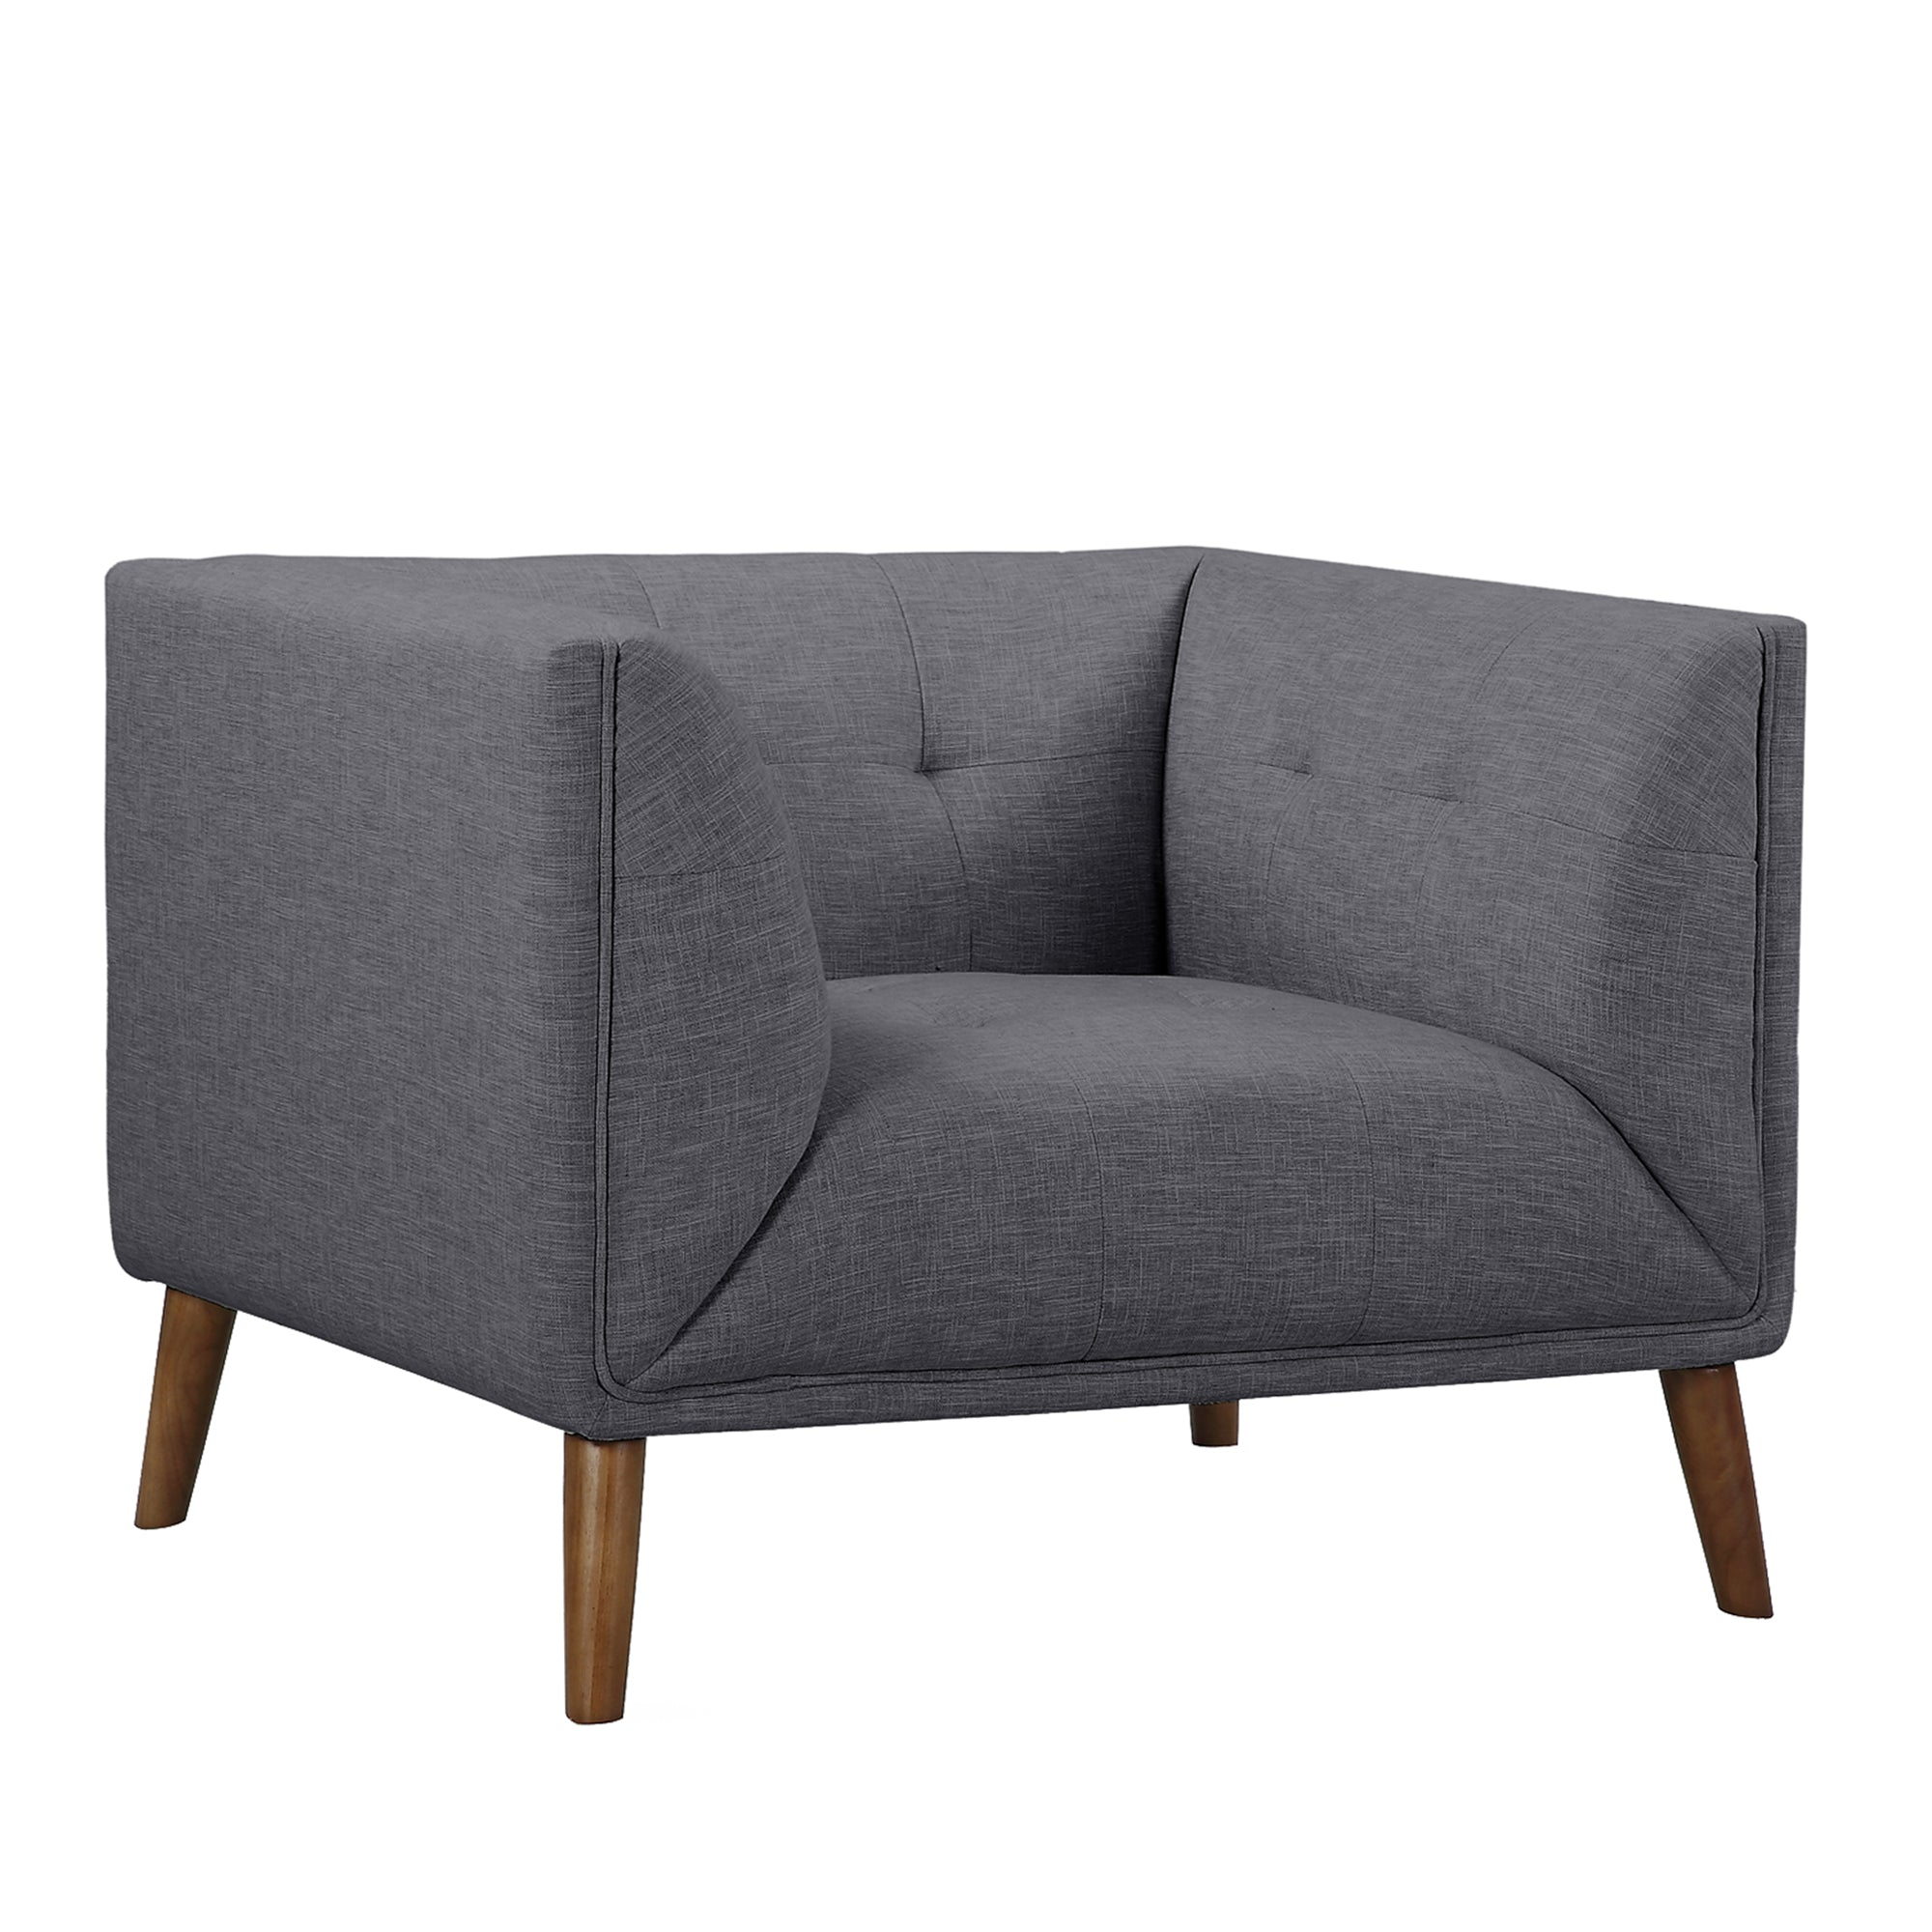 Armen Living Button Tufted Chair Dark Gray Linen Walnut Legs Hudson